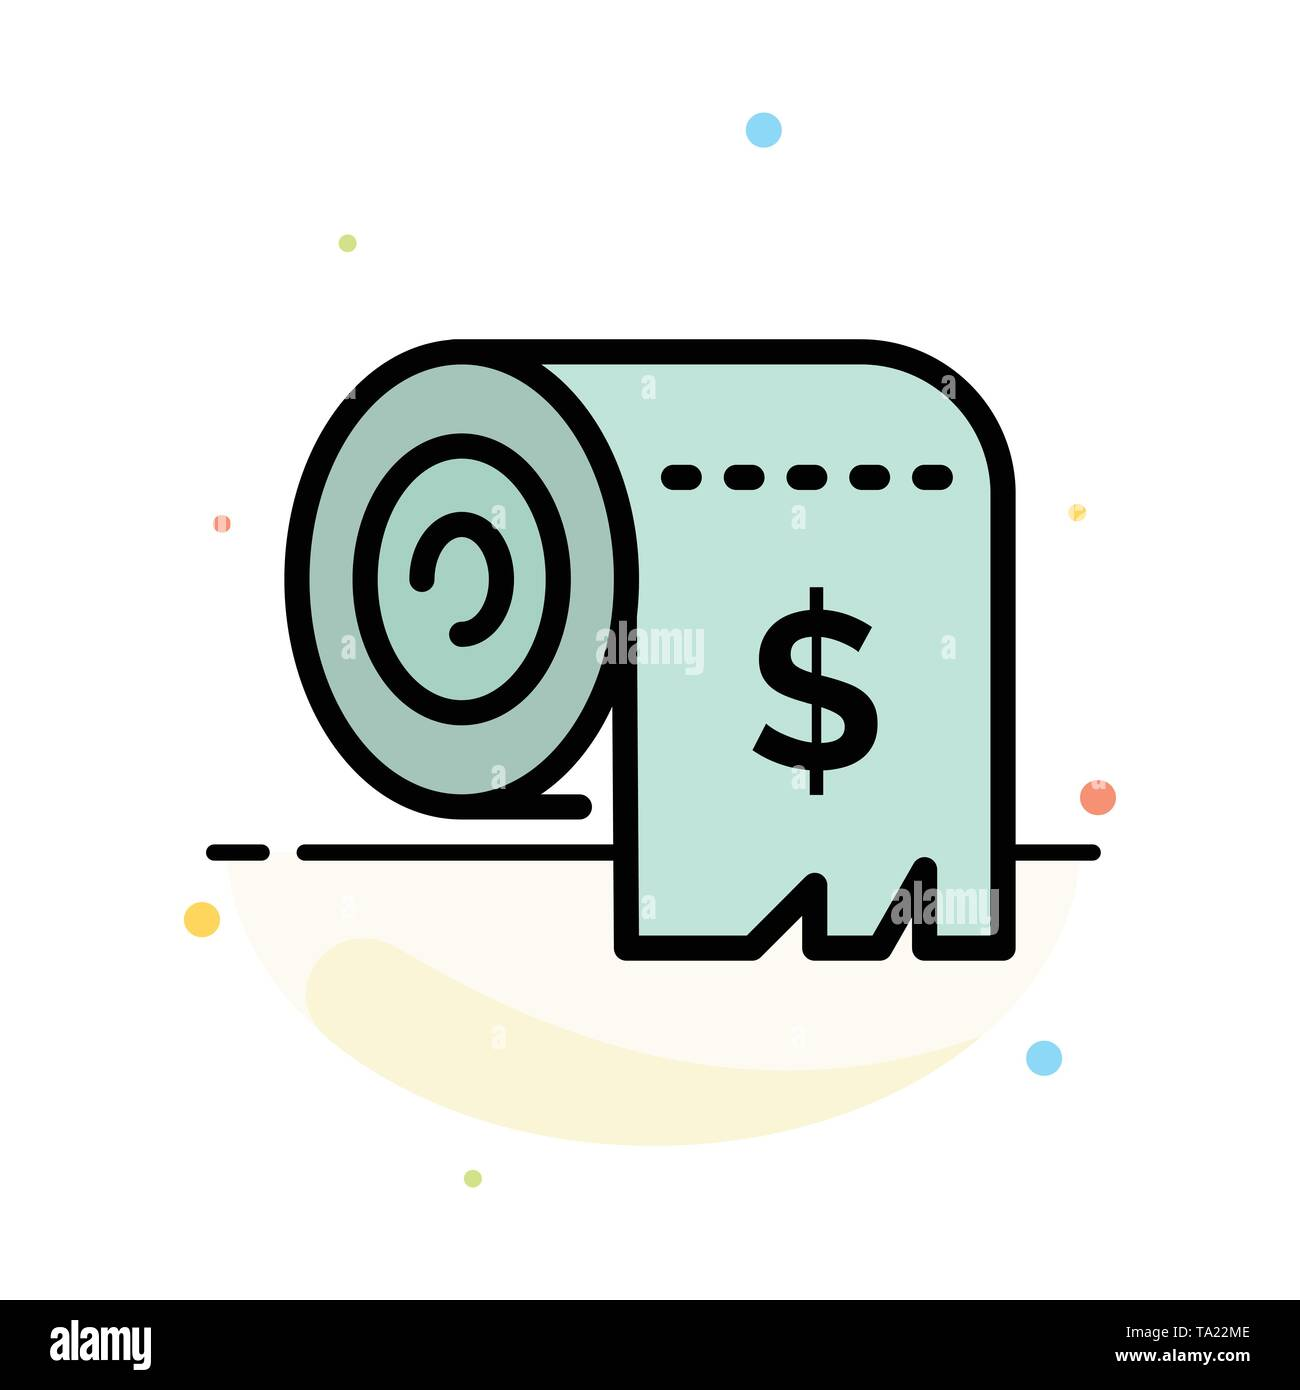 Budget, Consumption, Costs, Expenses, Finance Abstract Flat Color Icon Template - Stock Image